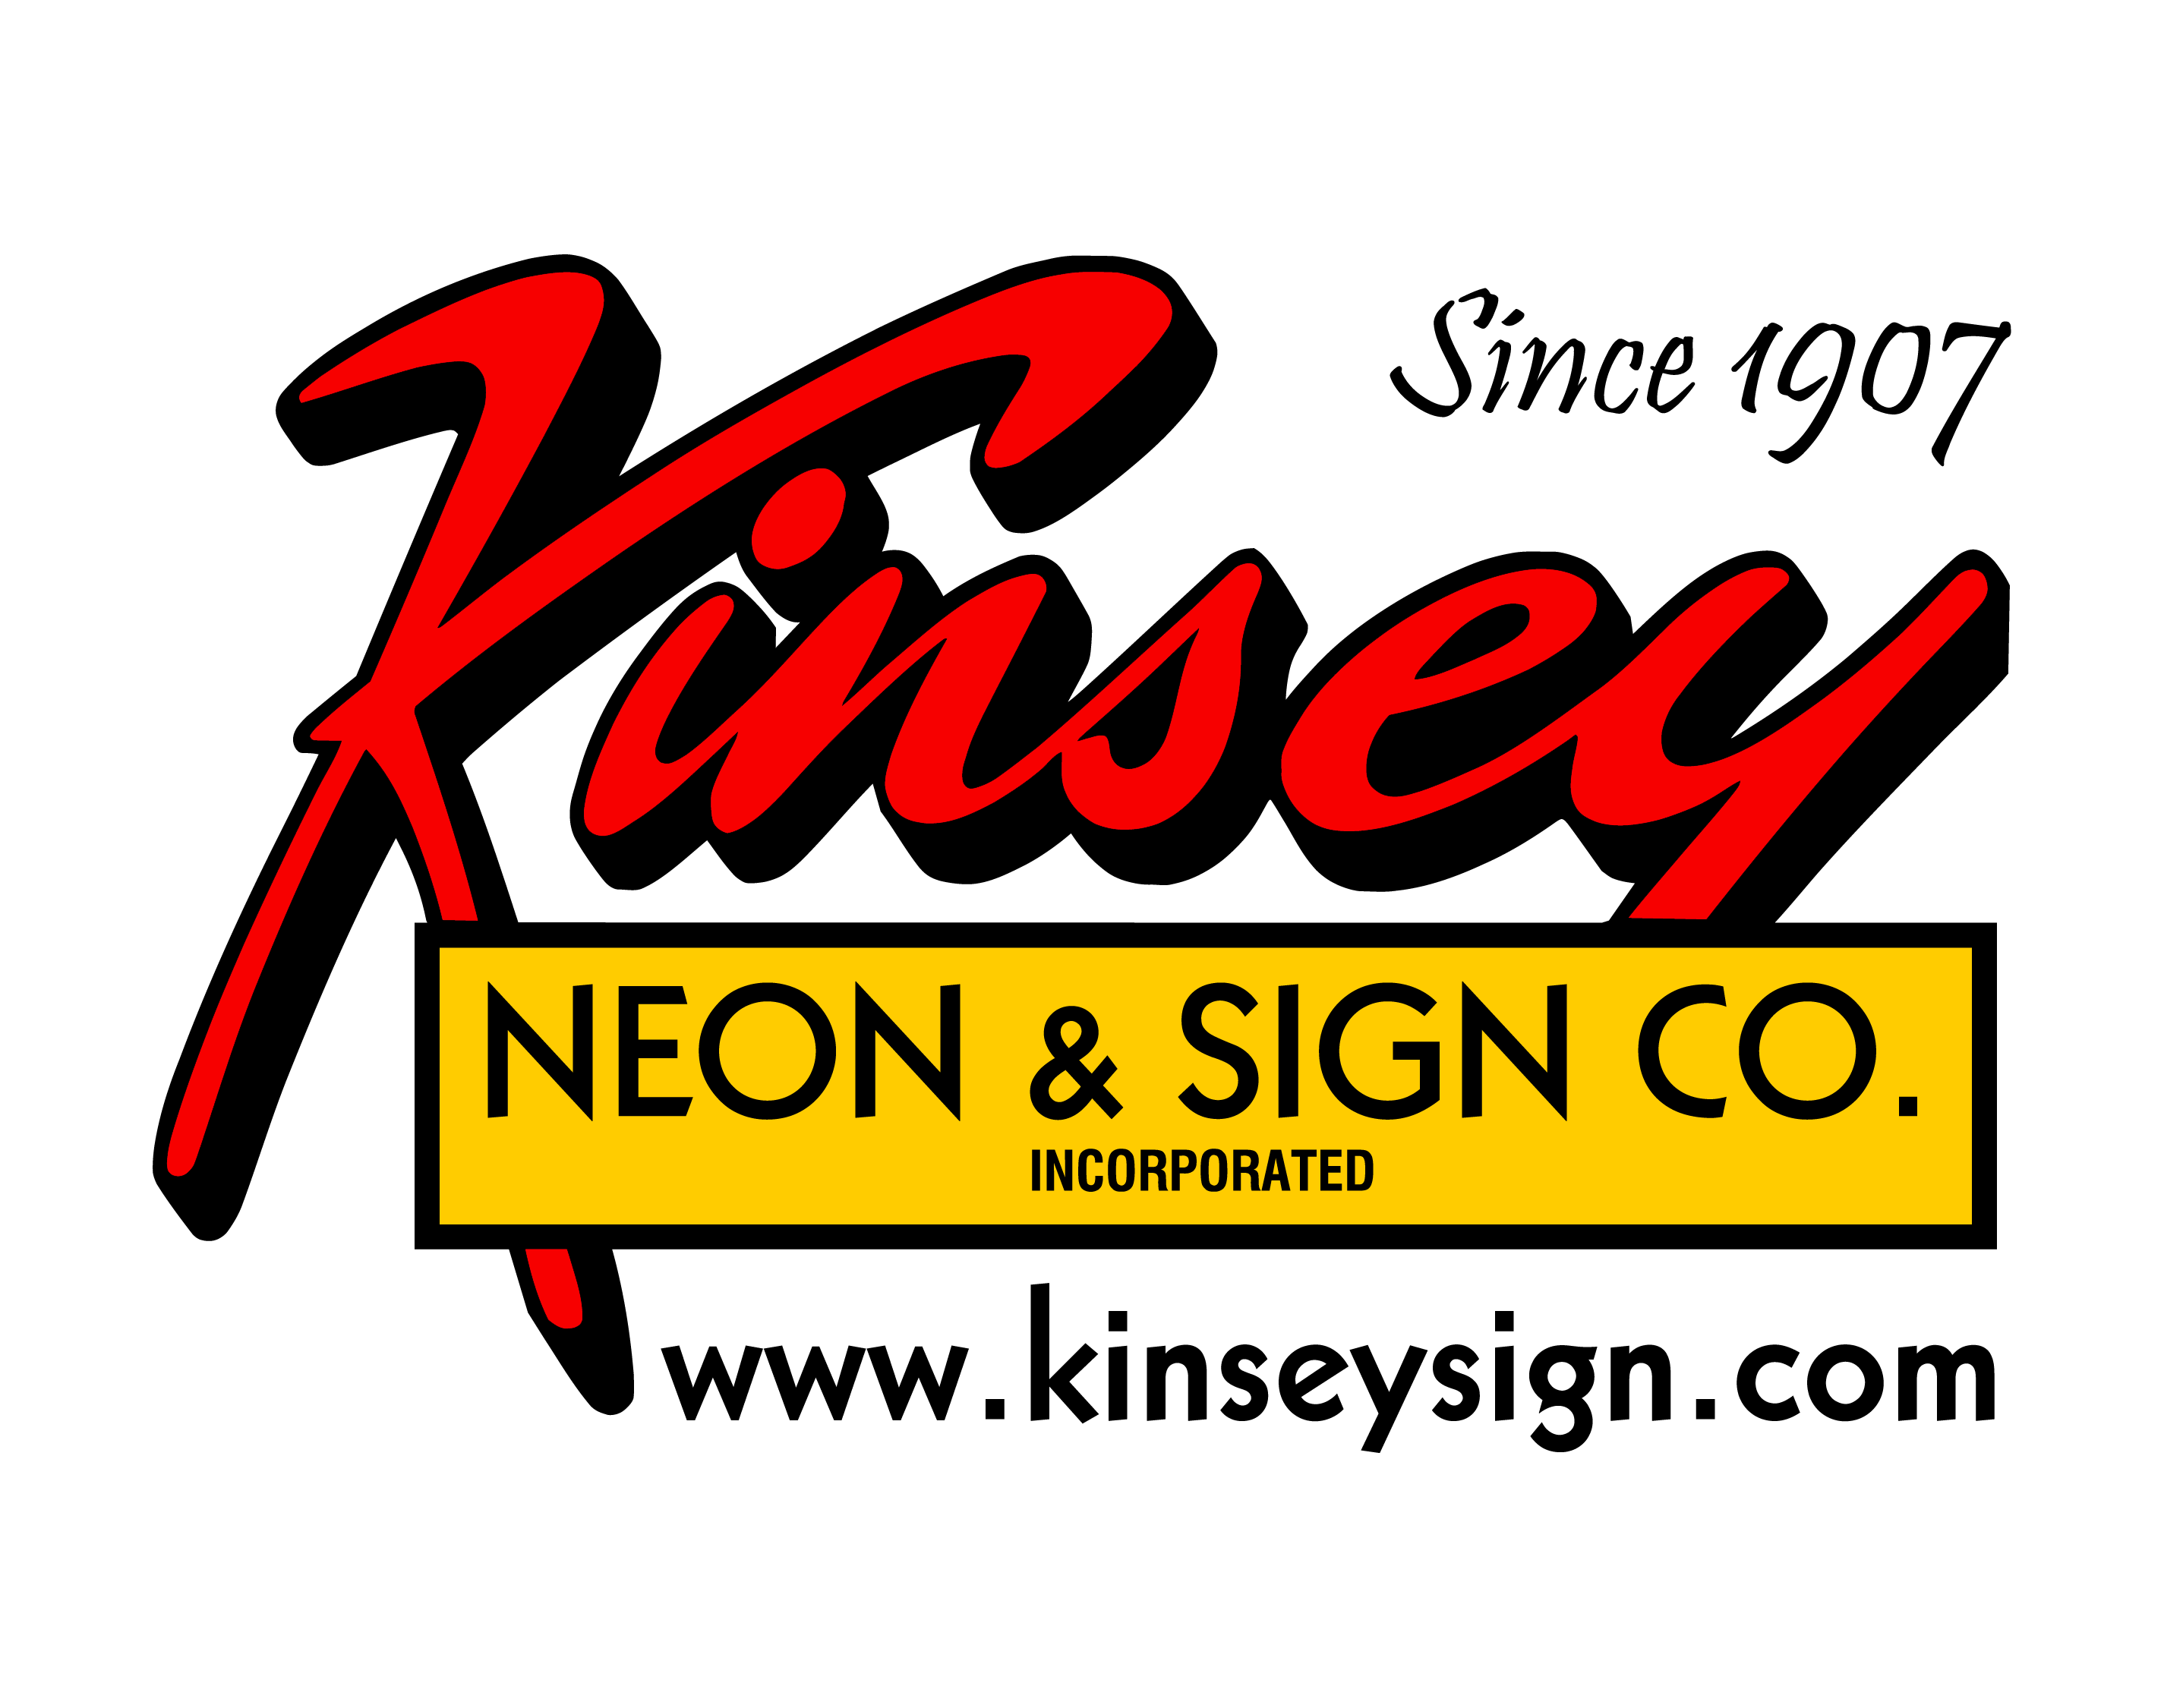 Kinsey Neon & Sign Co.